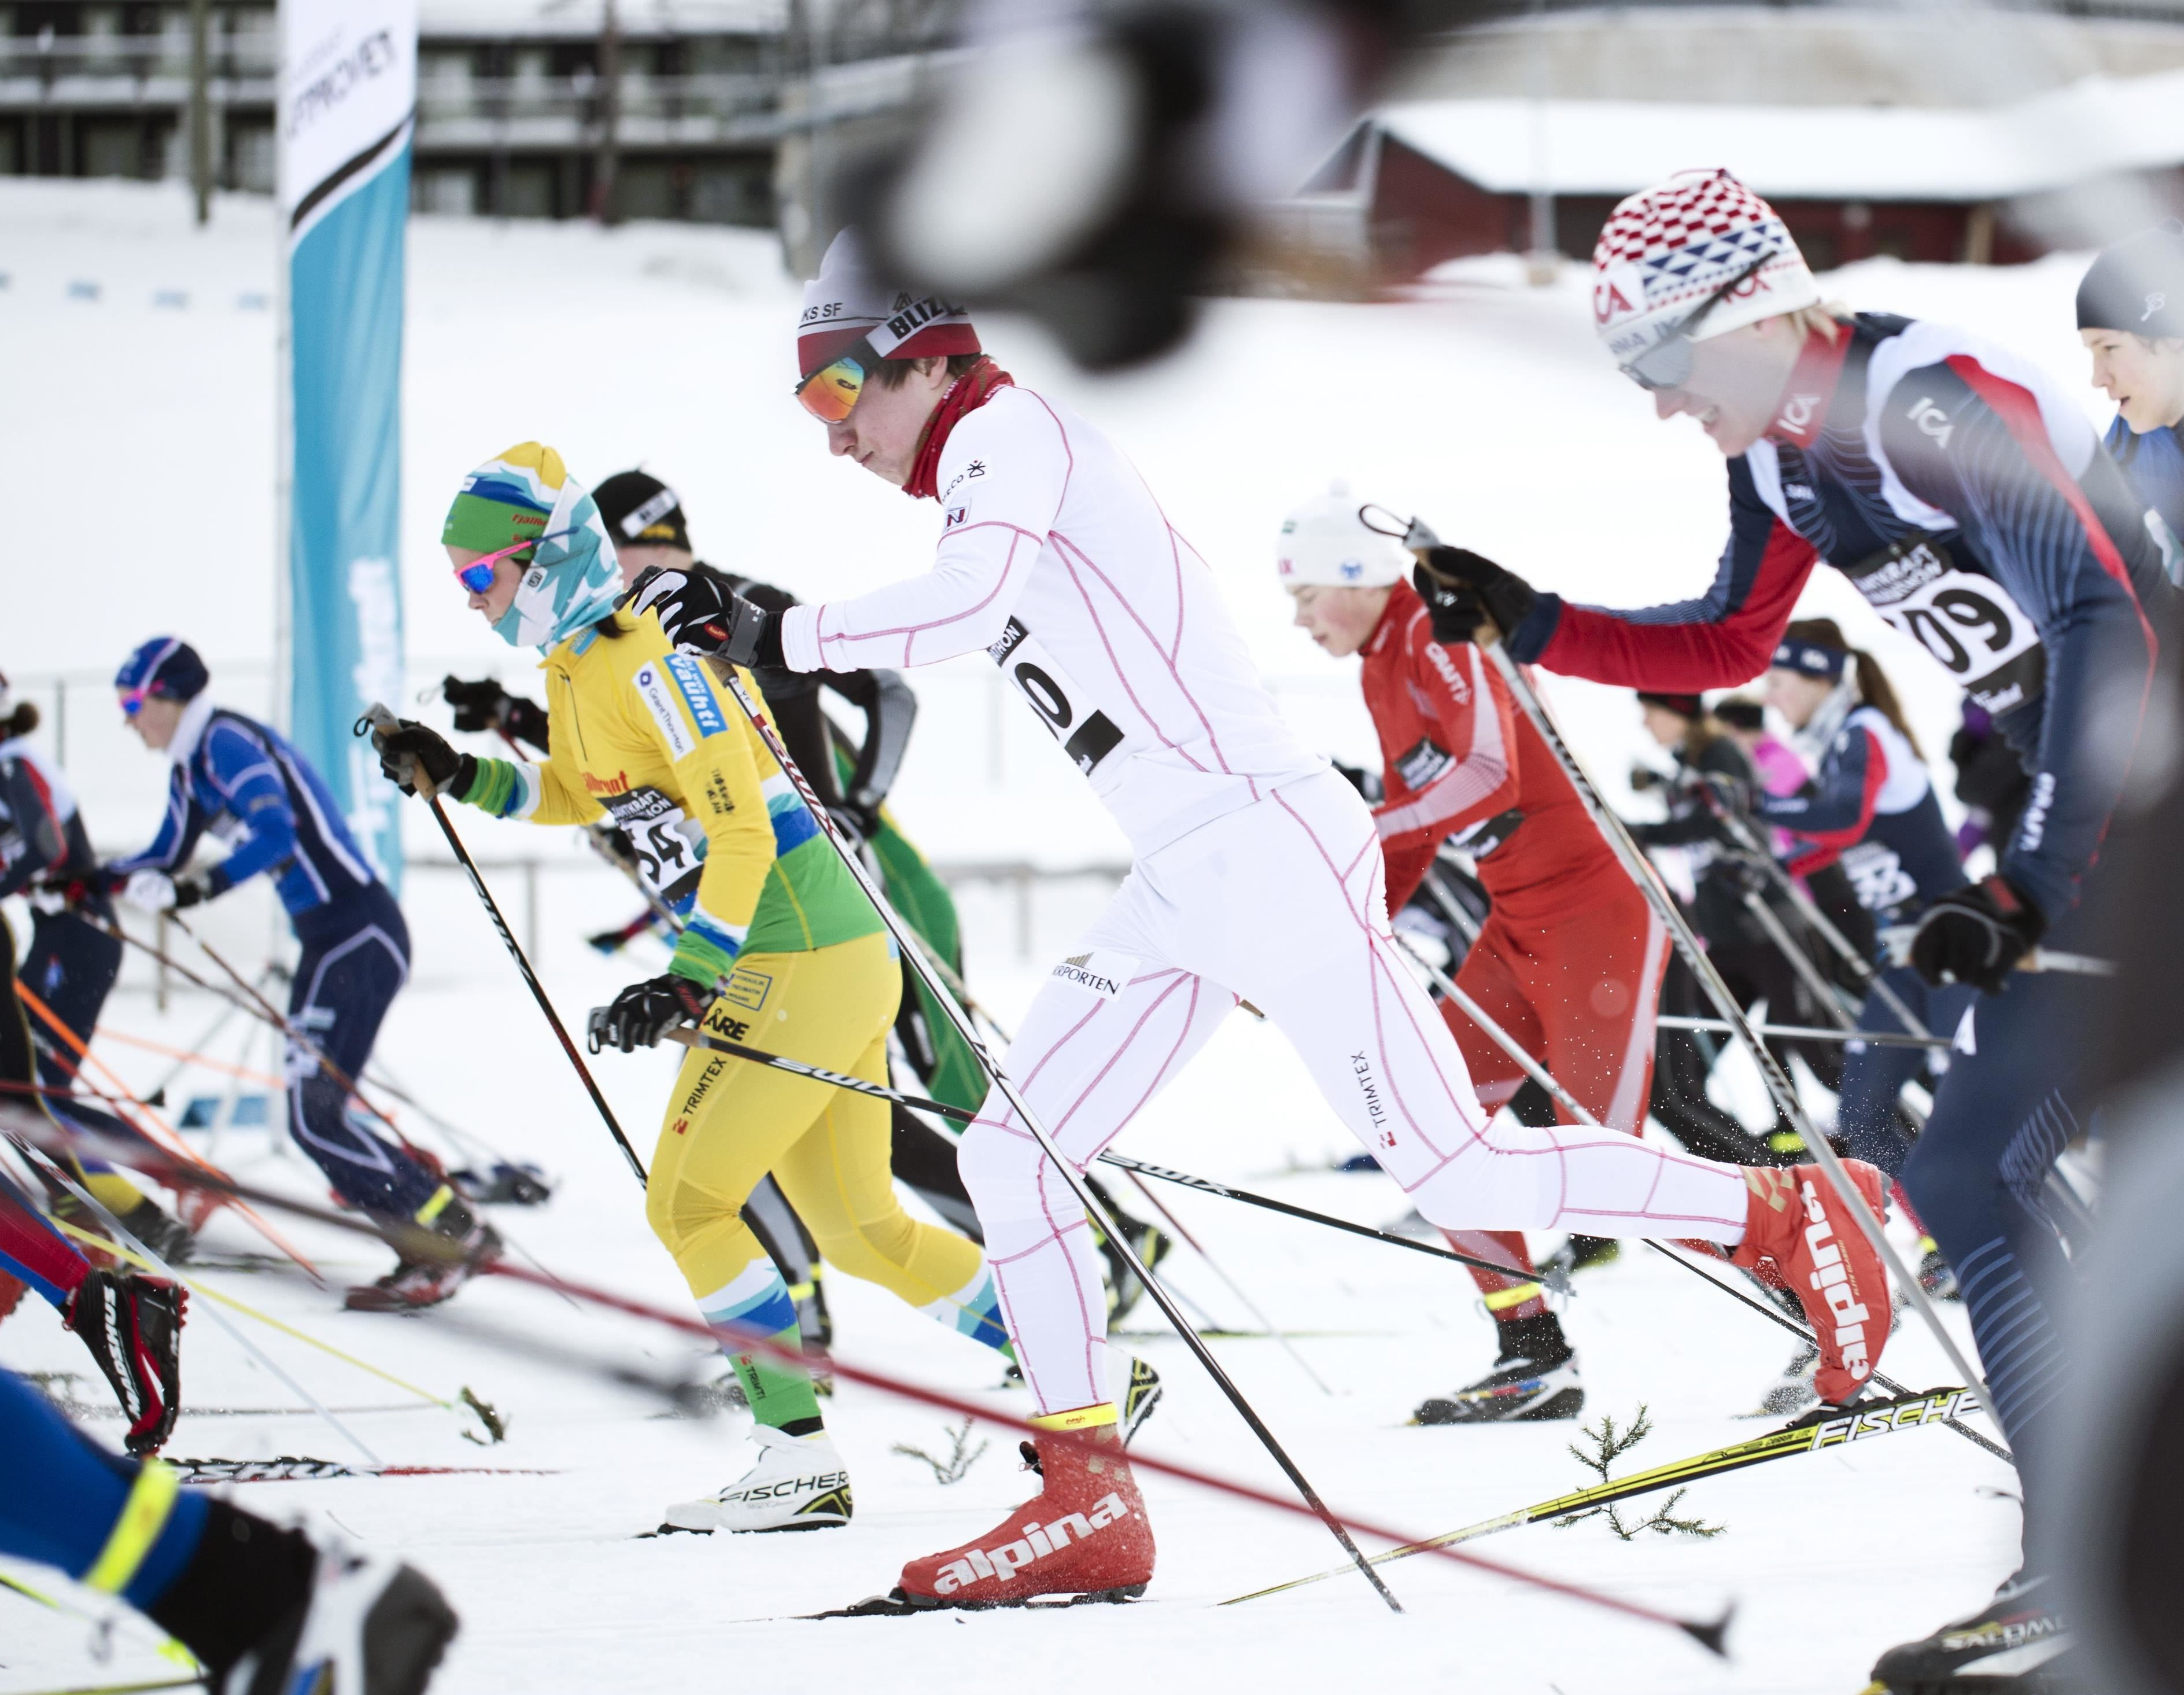 © Copy: Visit Östersund, FIS Cross Country Scandinavian Cup and SSF Cross Country